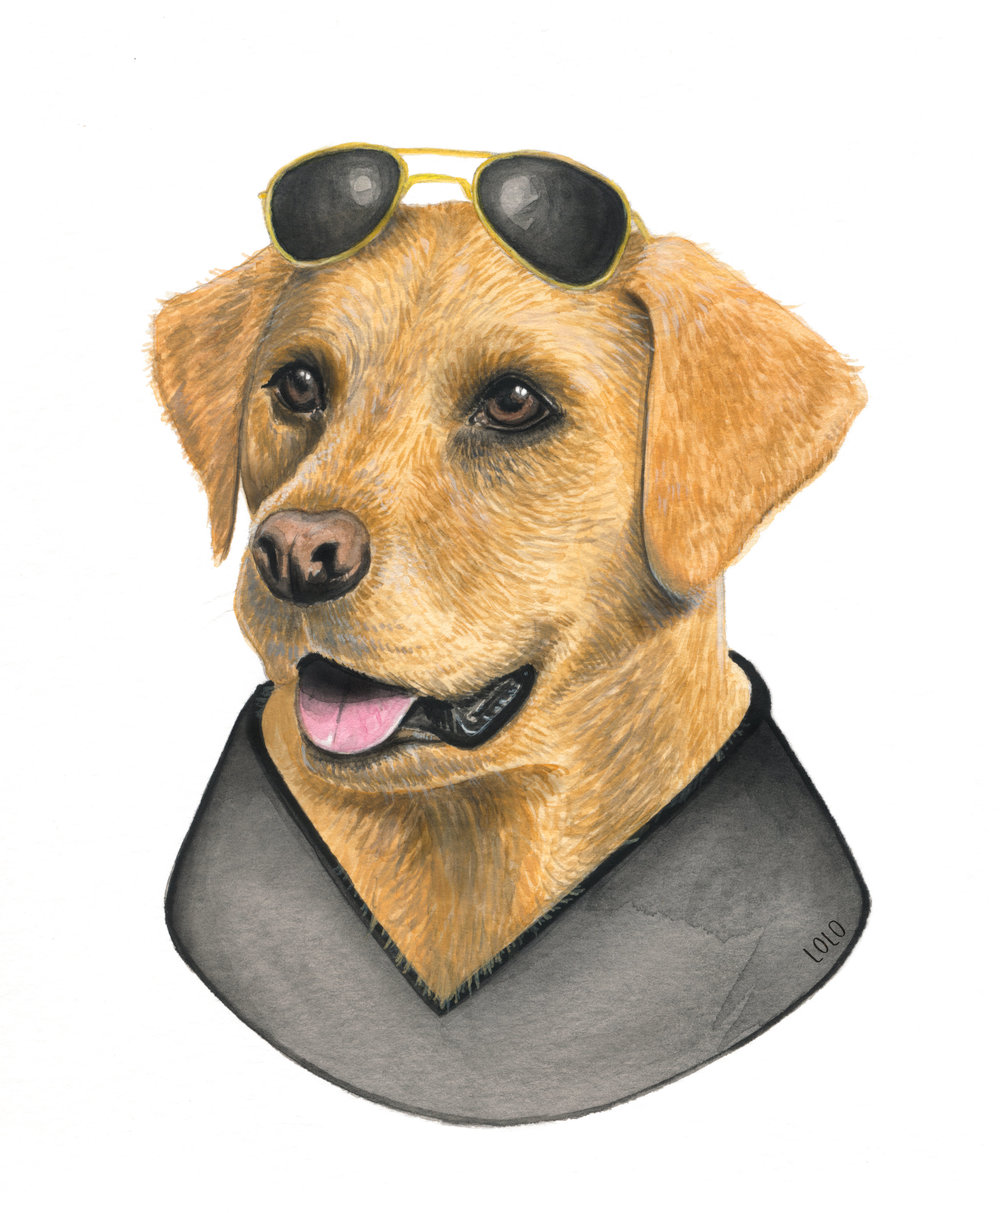 MR. PEANUTBUTTER - Watercolor, 9 x 7""